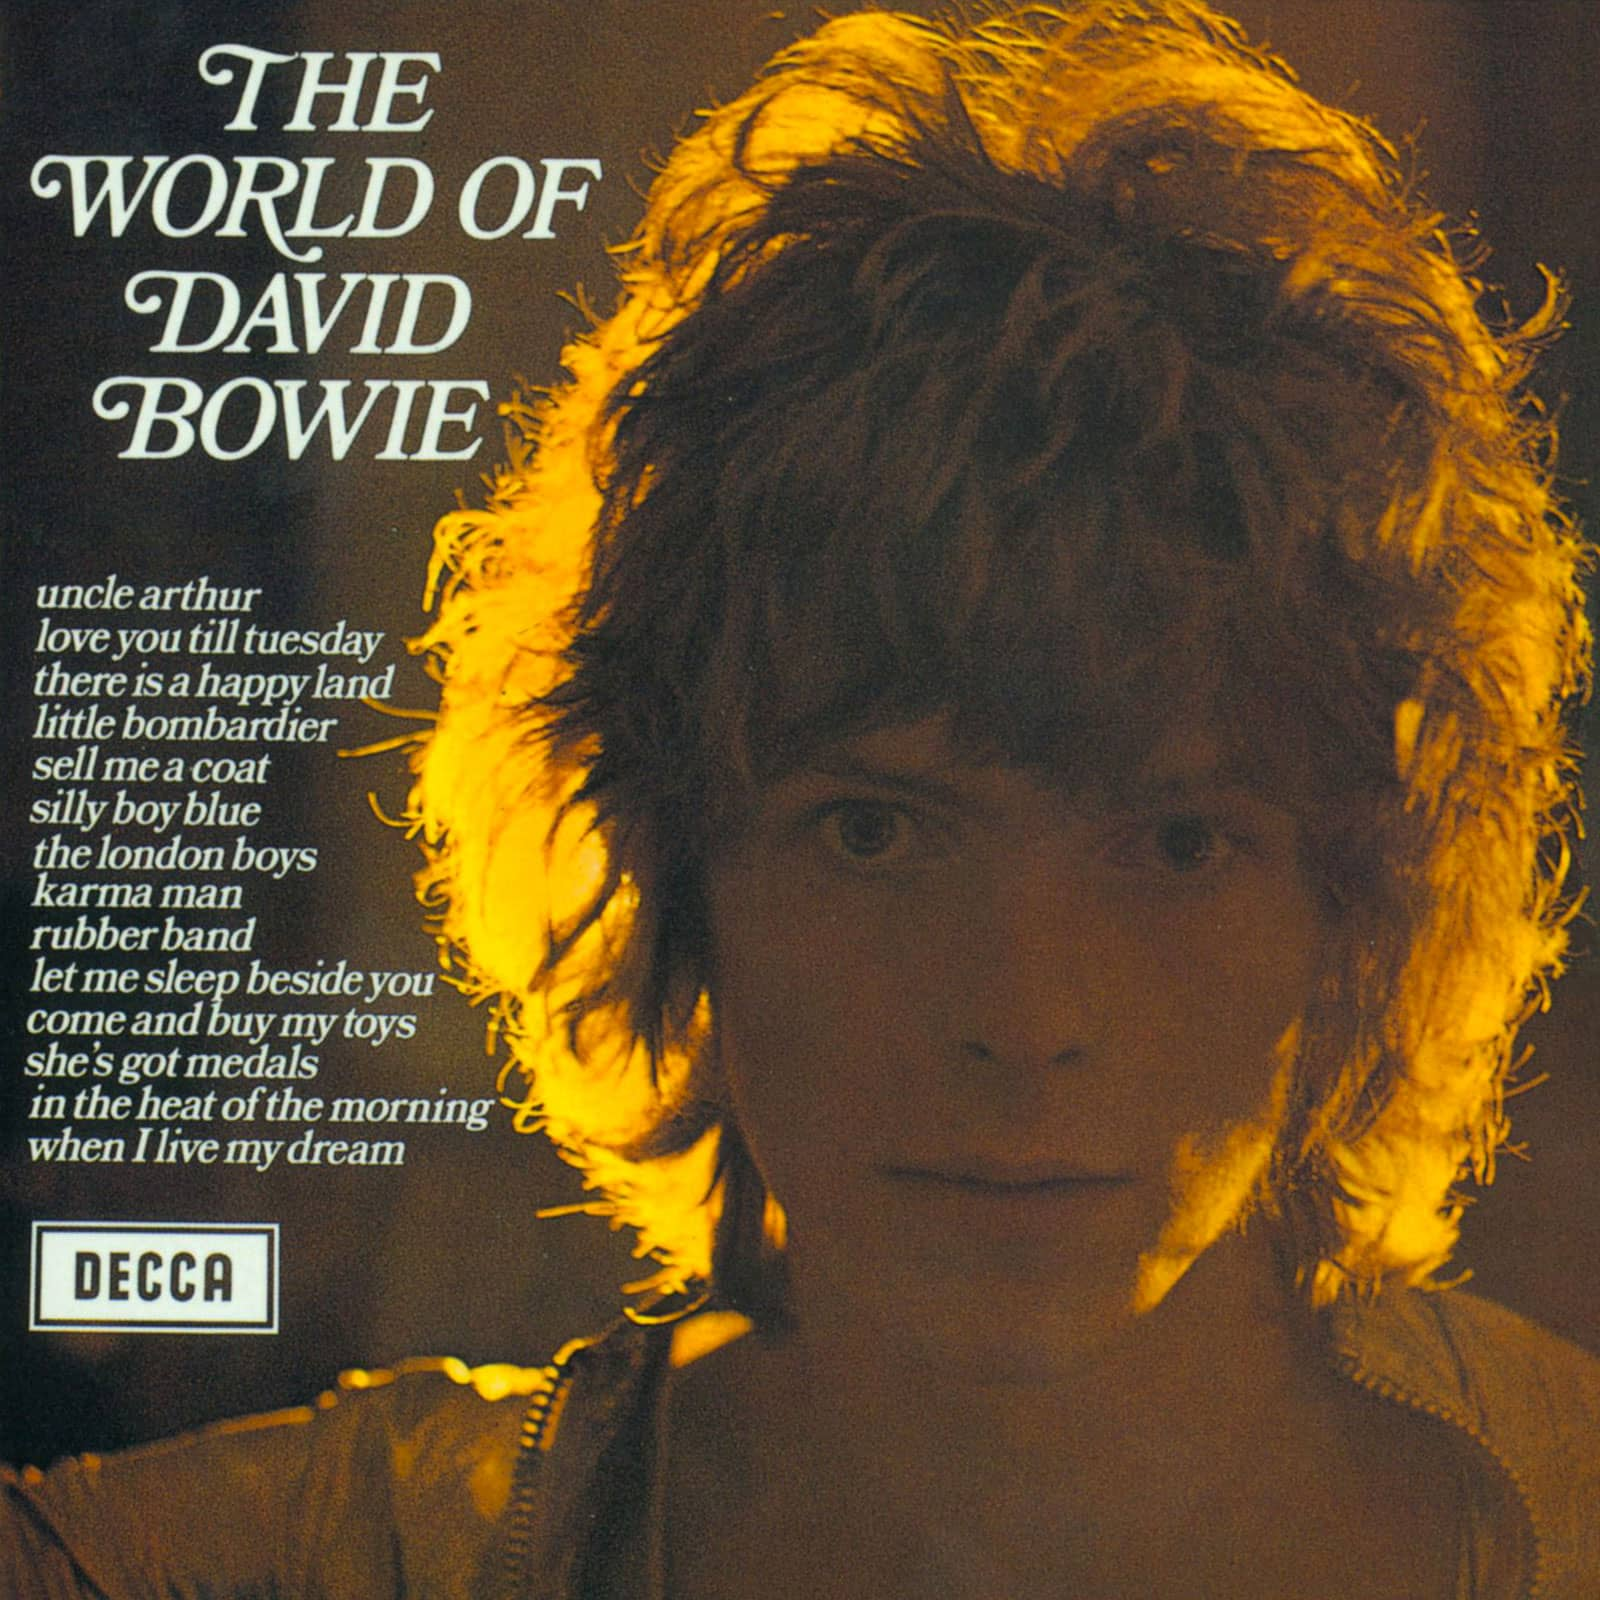 The World Of David Bowie album cover artwork – The Bowie Bible